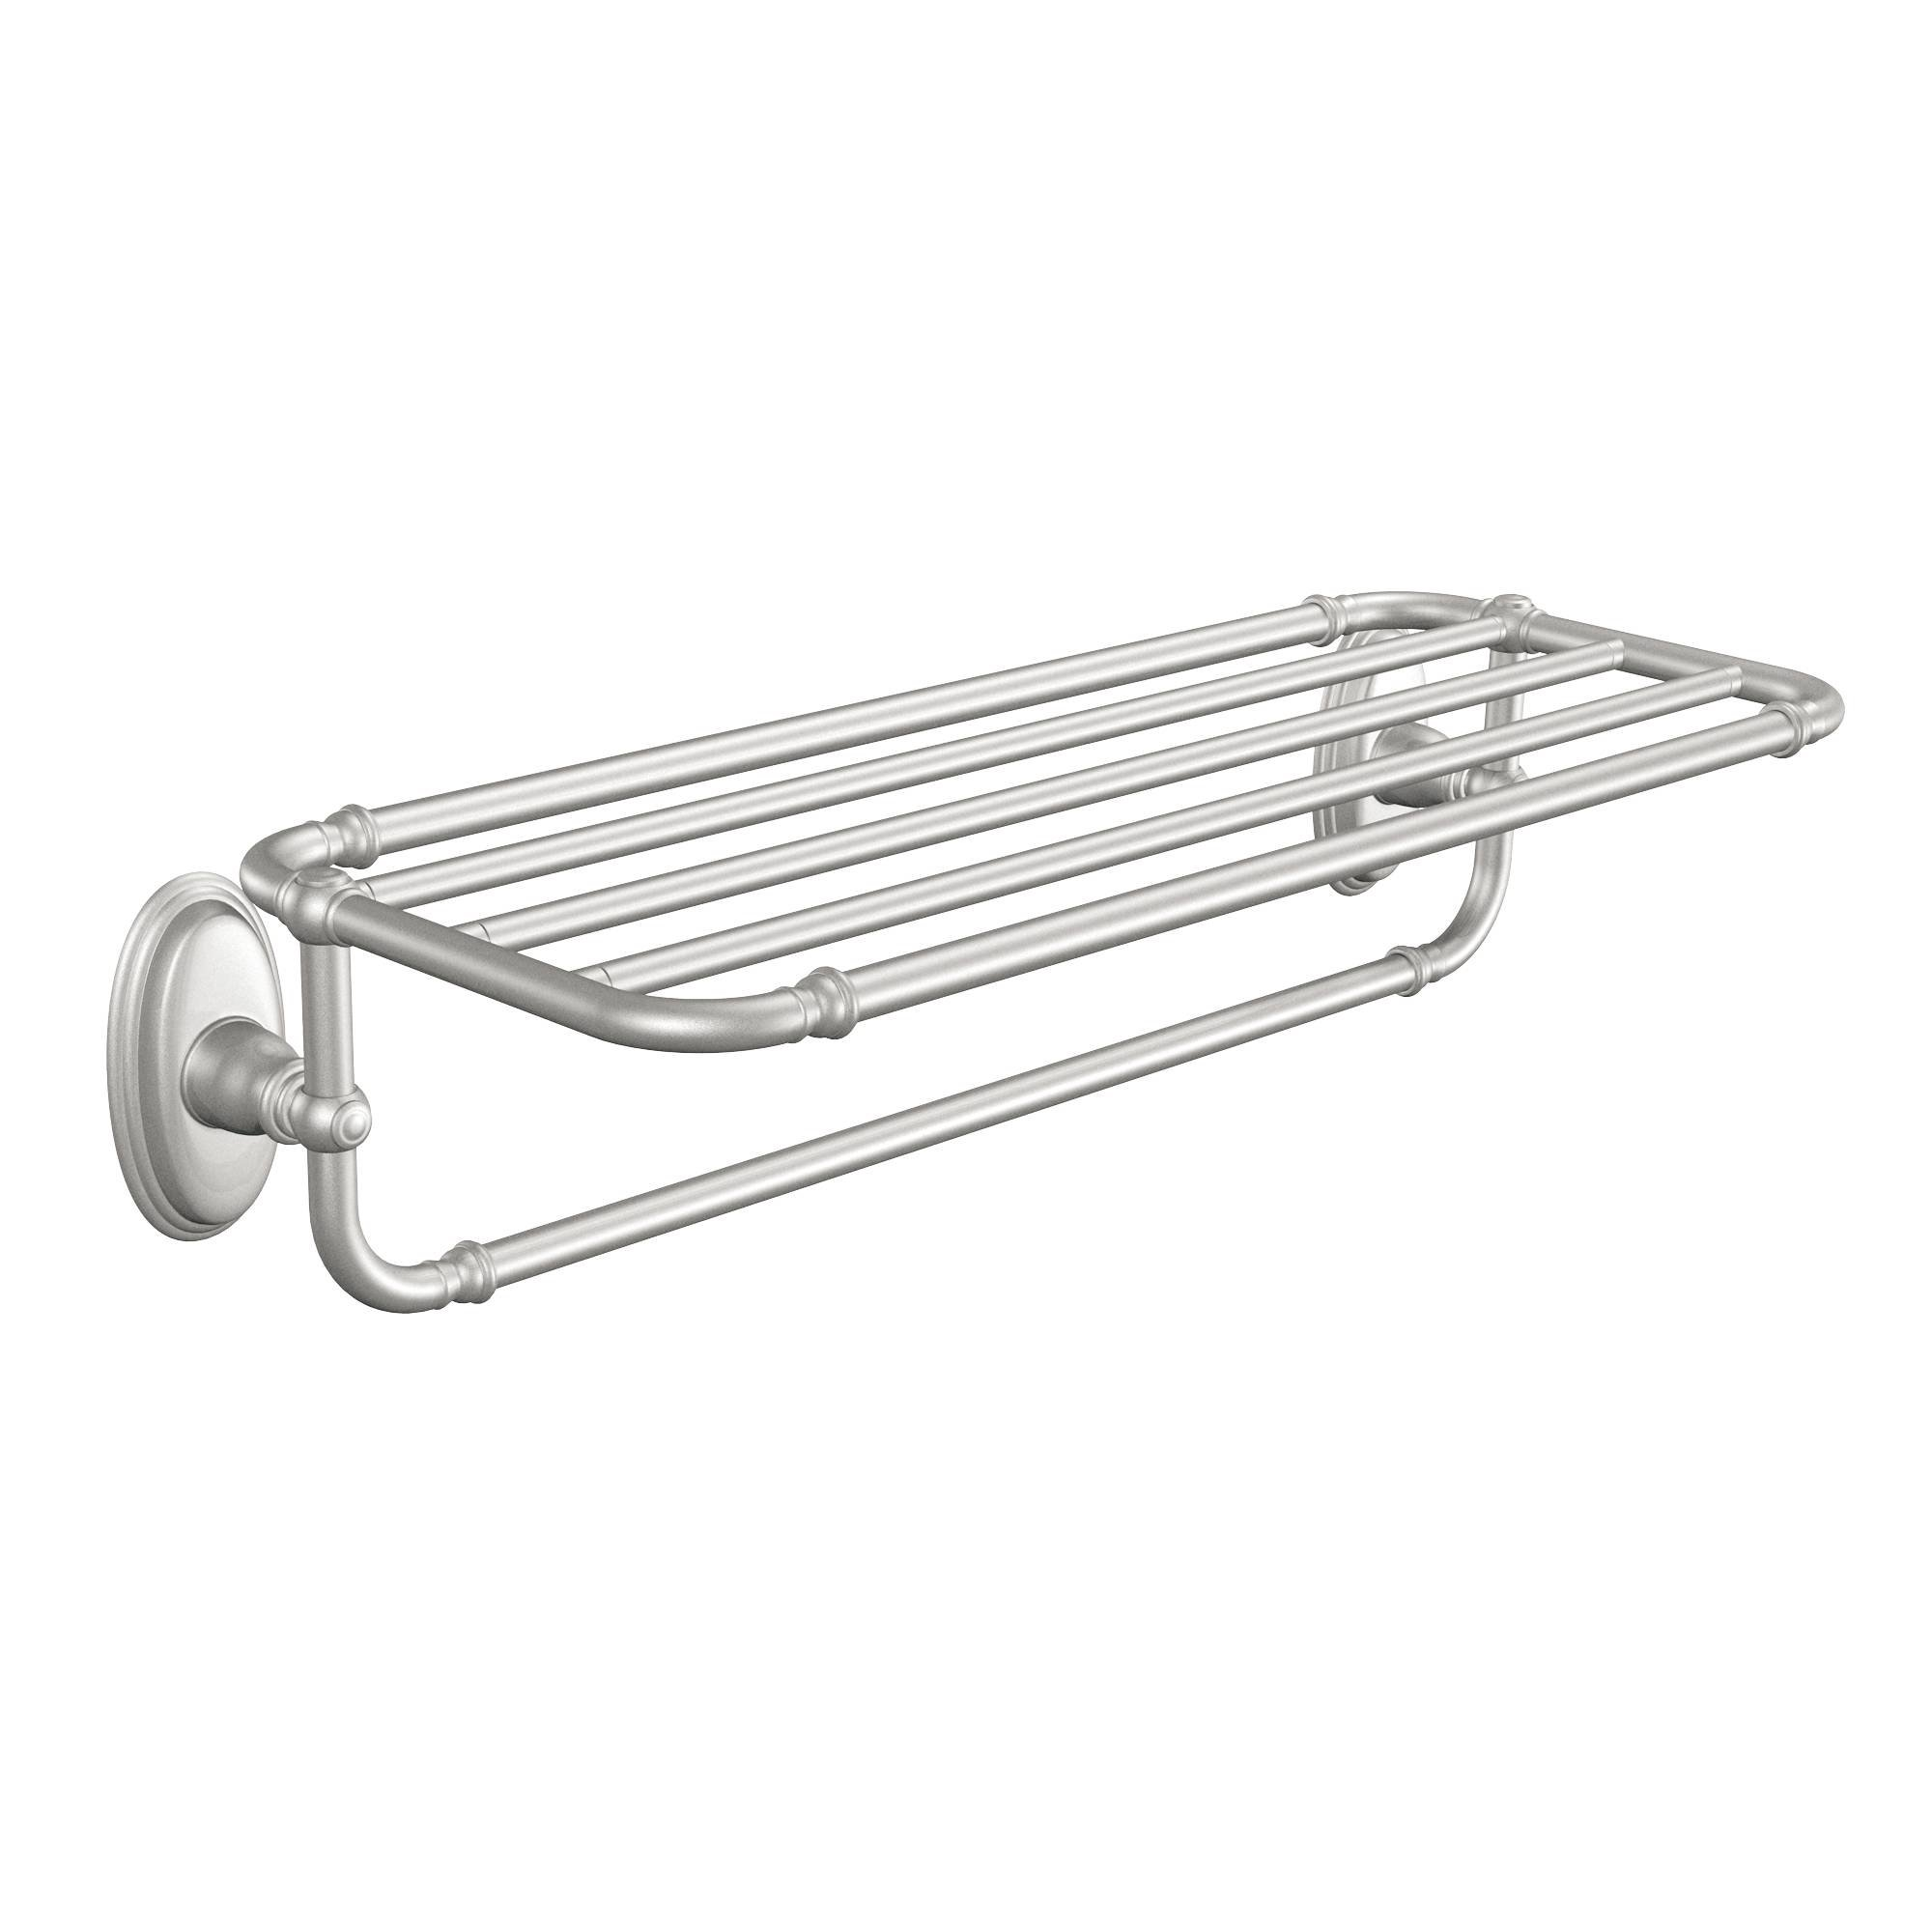 Moen YB5494BN Kingsley Bathroom Towel Shelf, Brushed Nickel by Moen (Image #1)